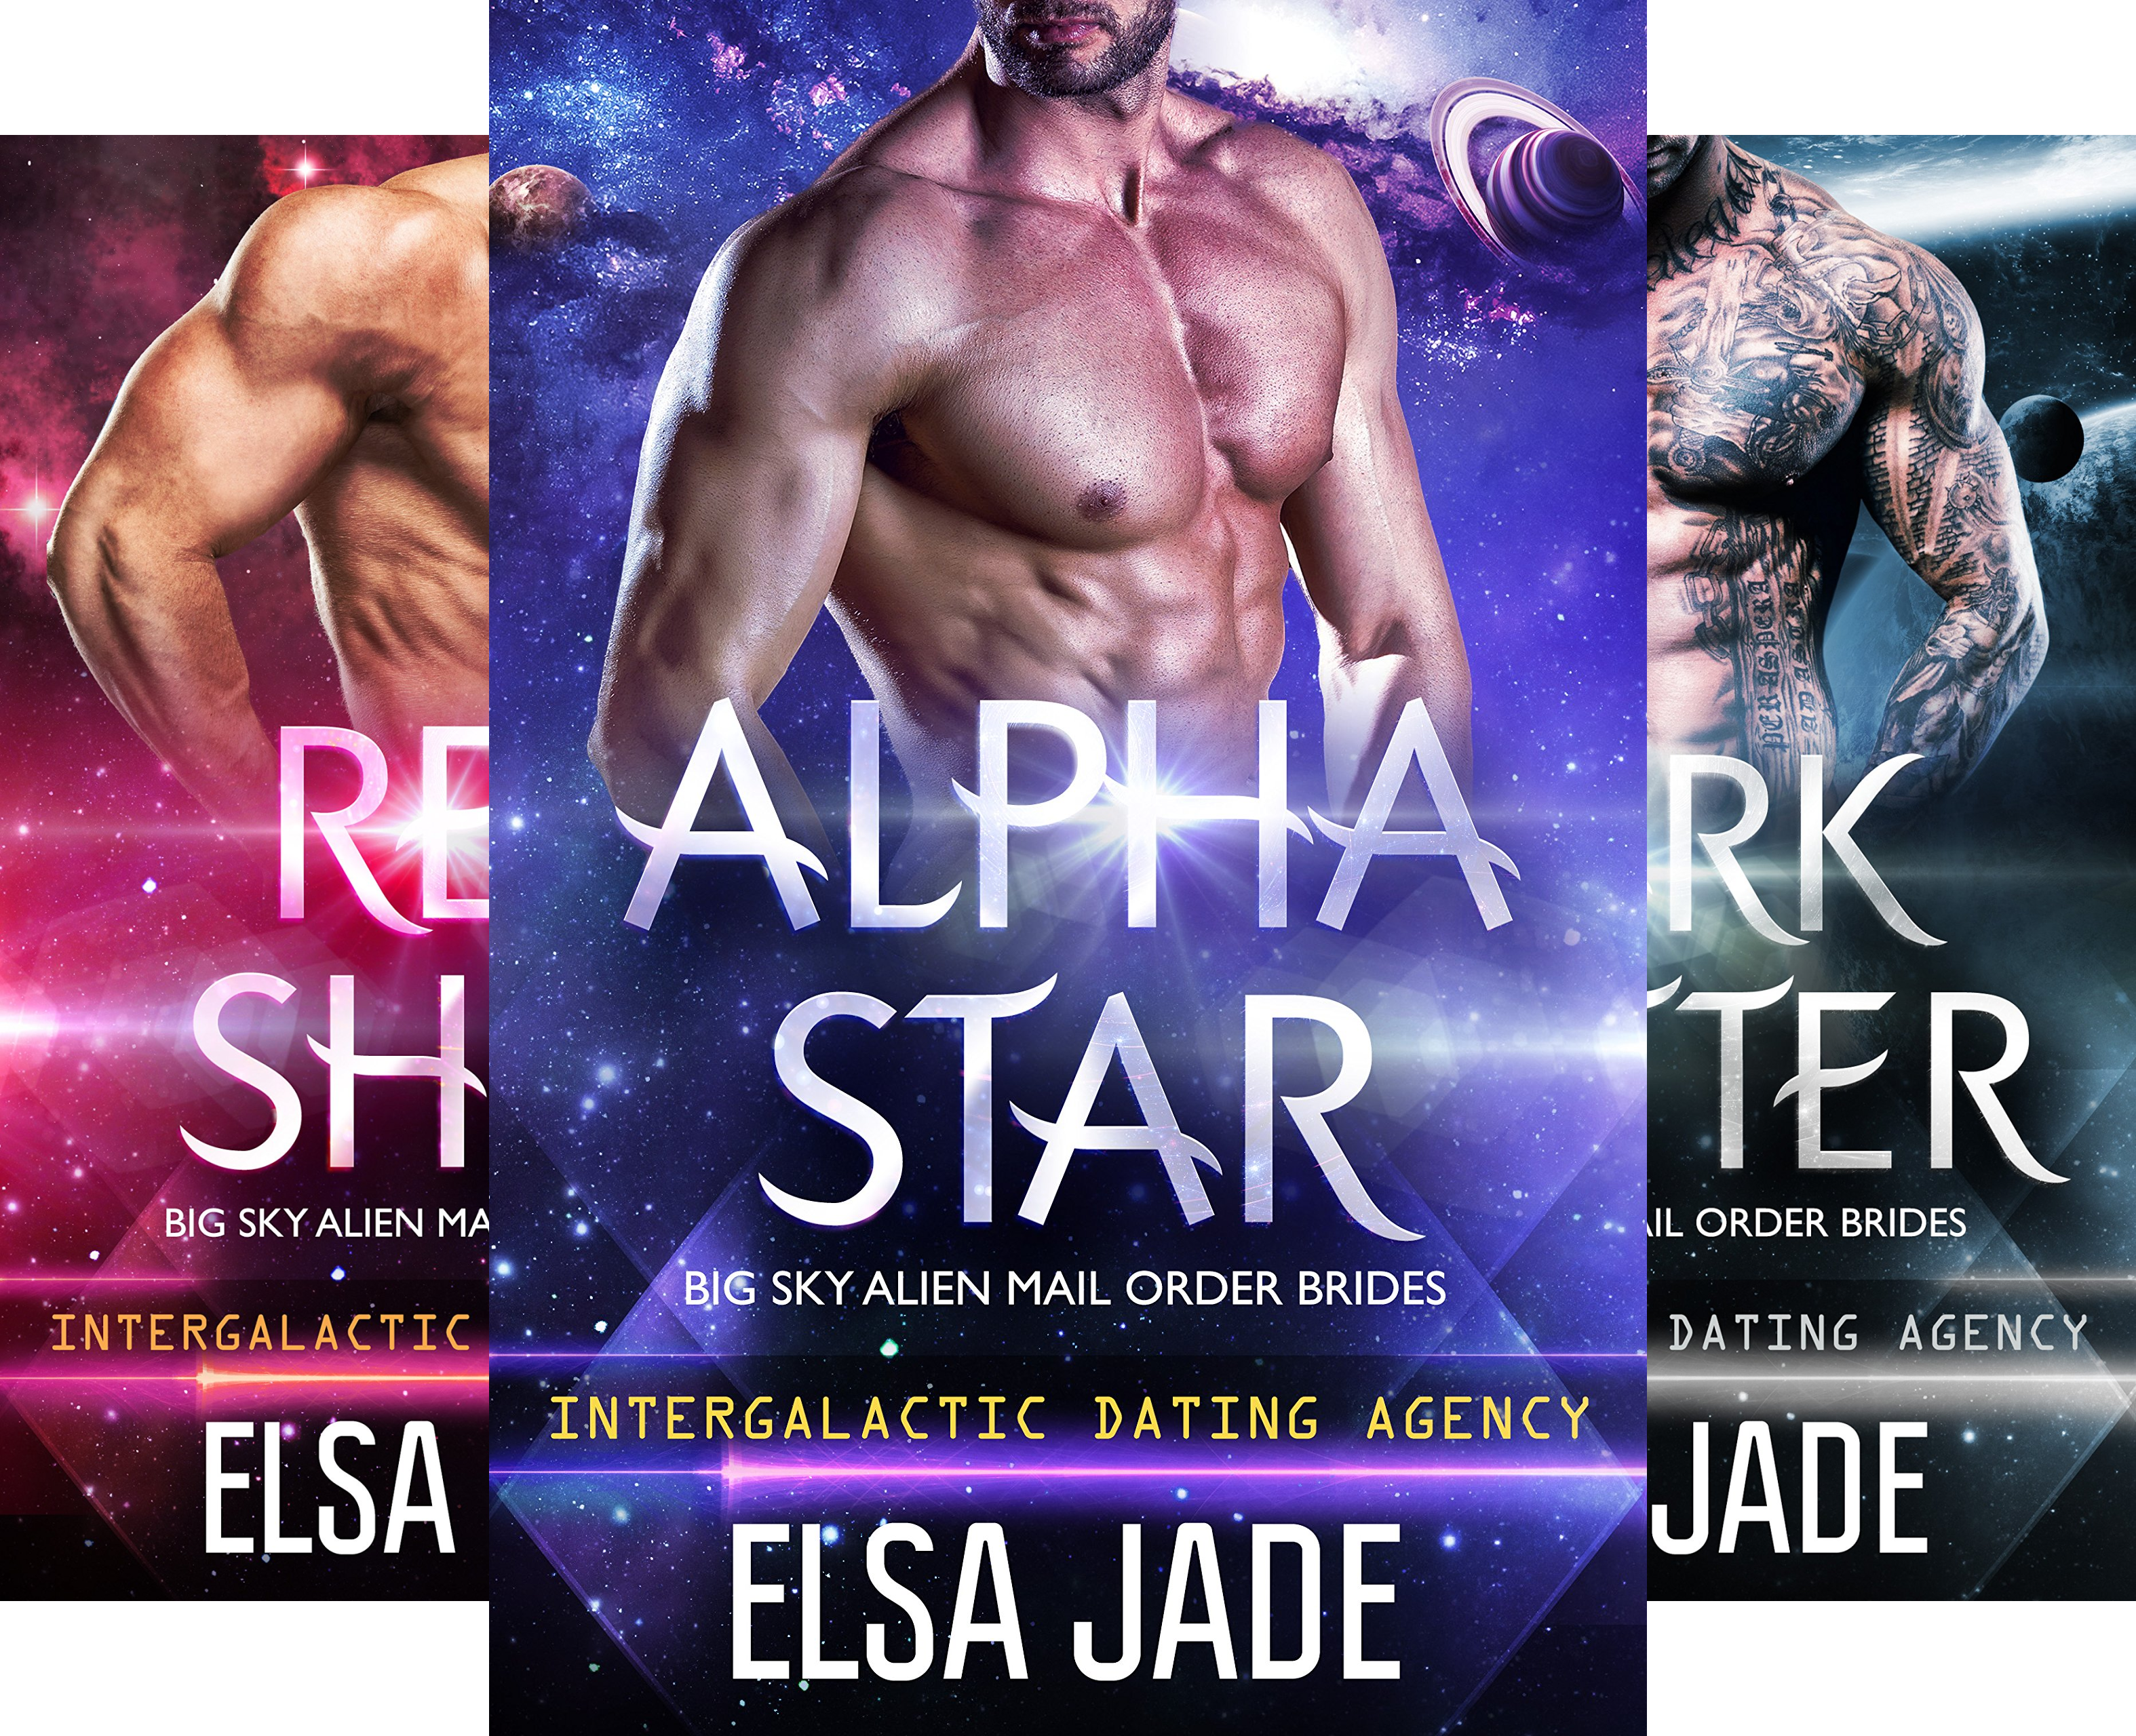 Big Sky Alien Mail Order Brides (6 Book Series)